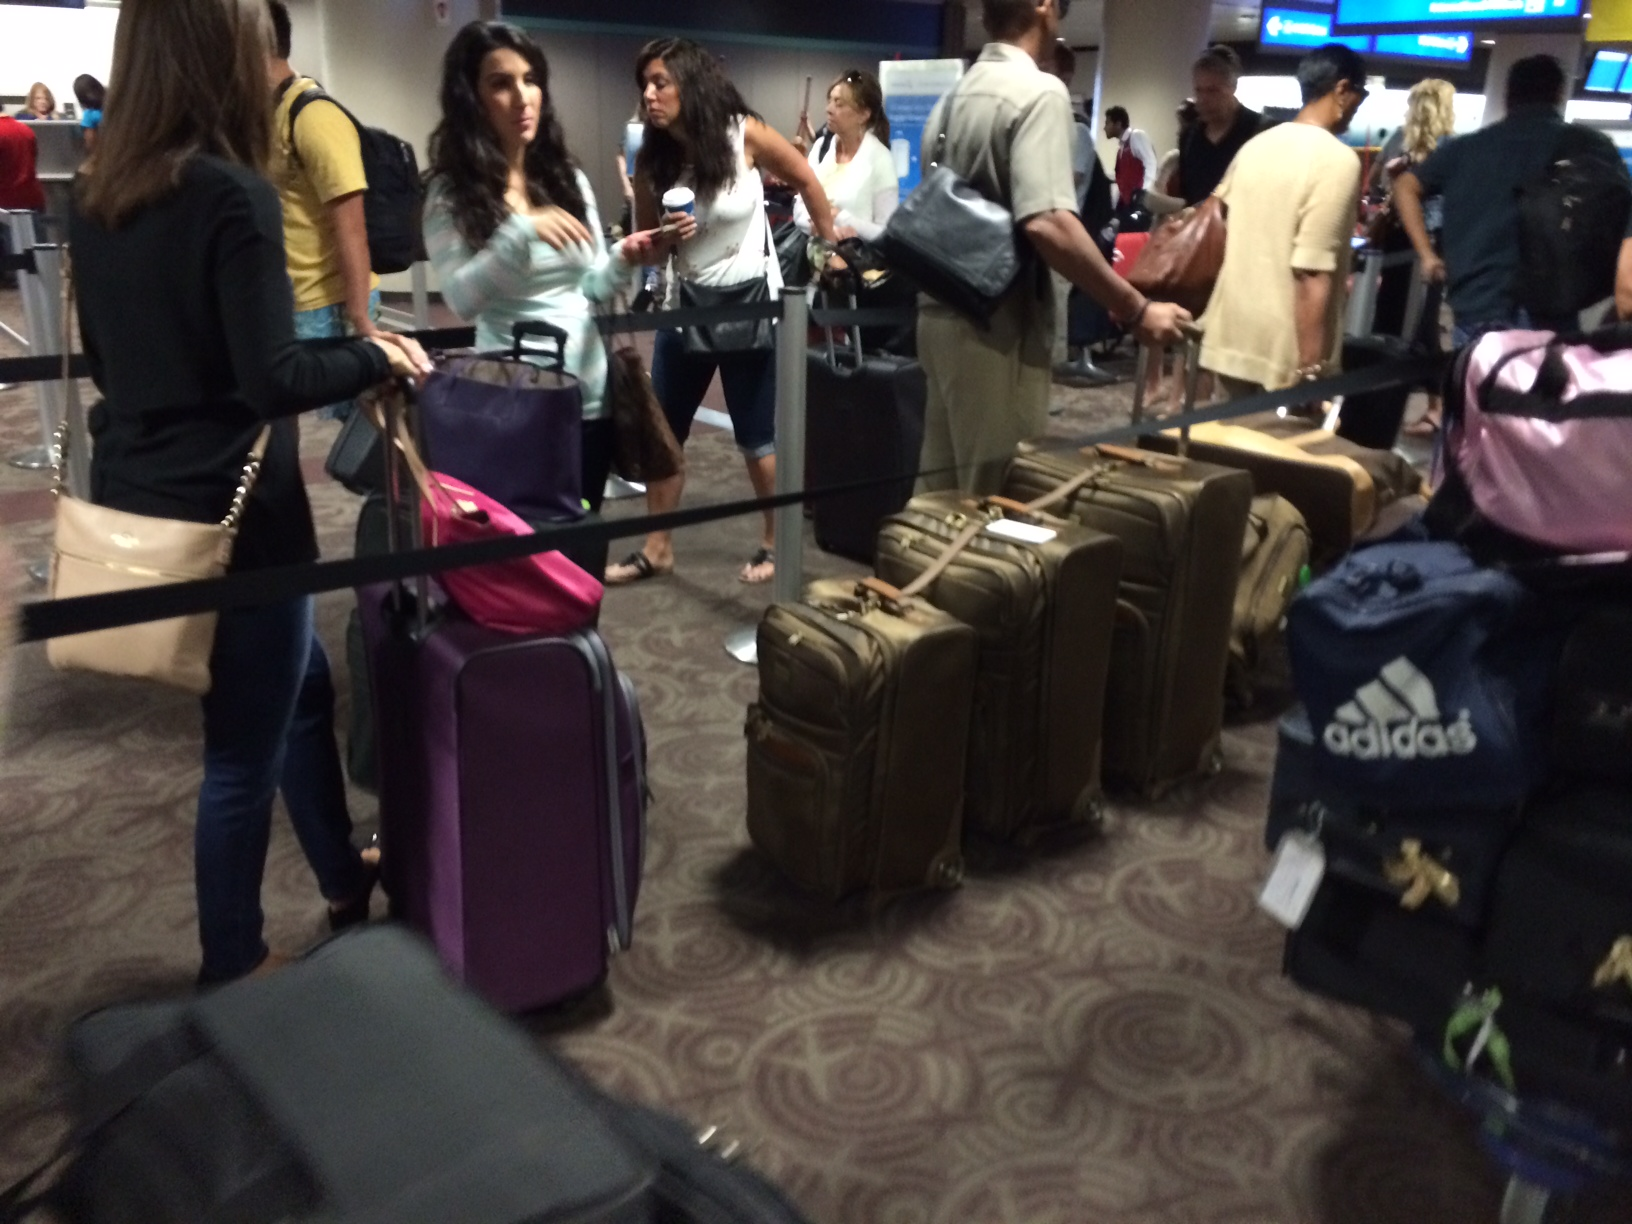 Pied Piper of luggage